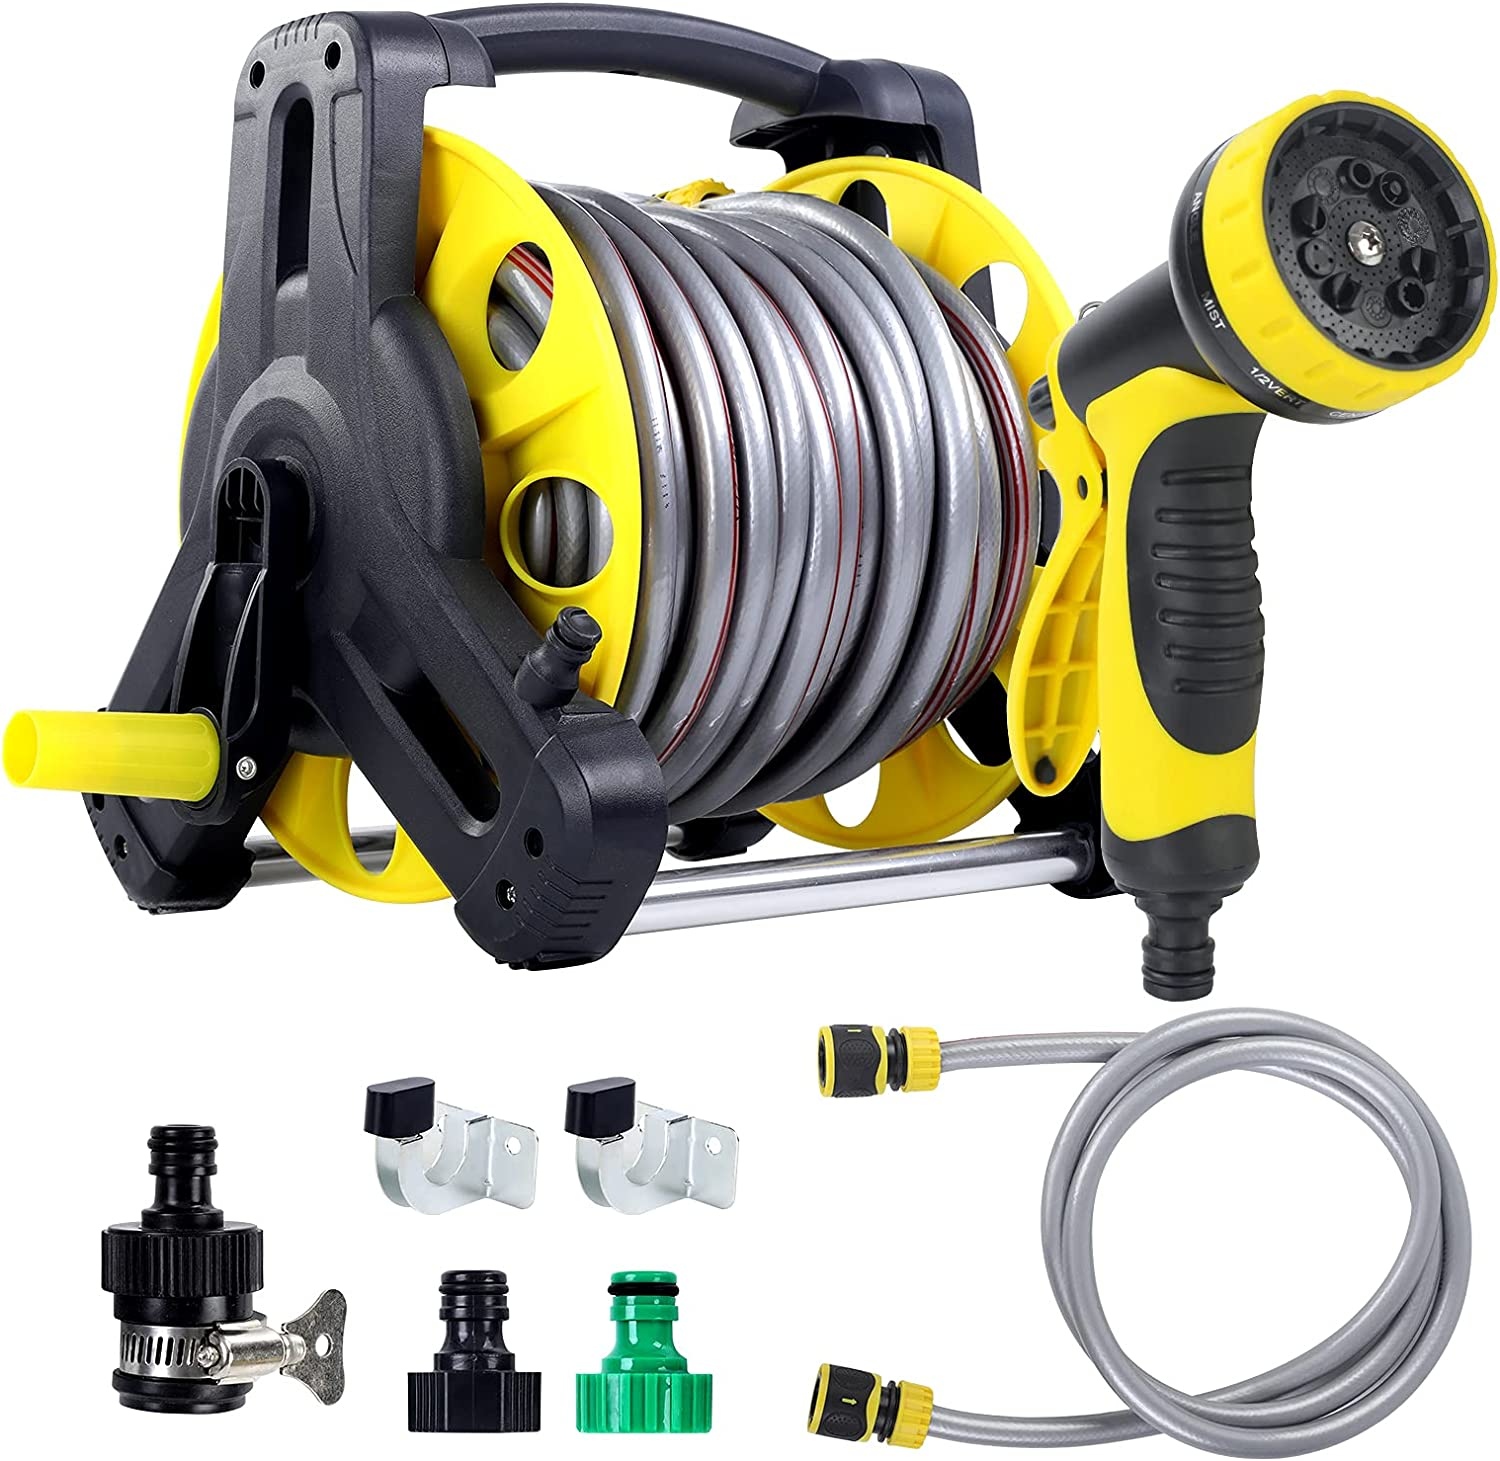 Quarut Mobile Garden Hose Reel Kit Apply to Household Gardening and Cleaning.Included 1/2in x100ft Hose and Garden Lead-in Hose10ft,Hose Nozzle,3/4in MaleConnectors,Universal Tap Connector,Hook.